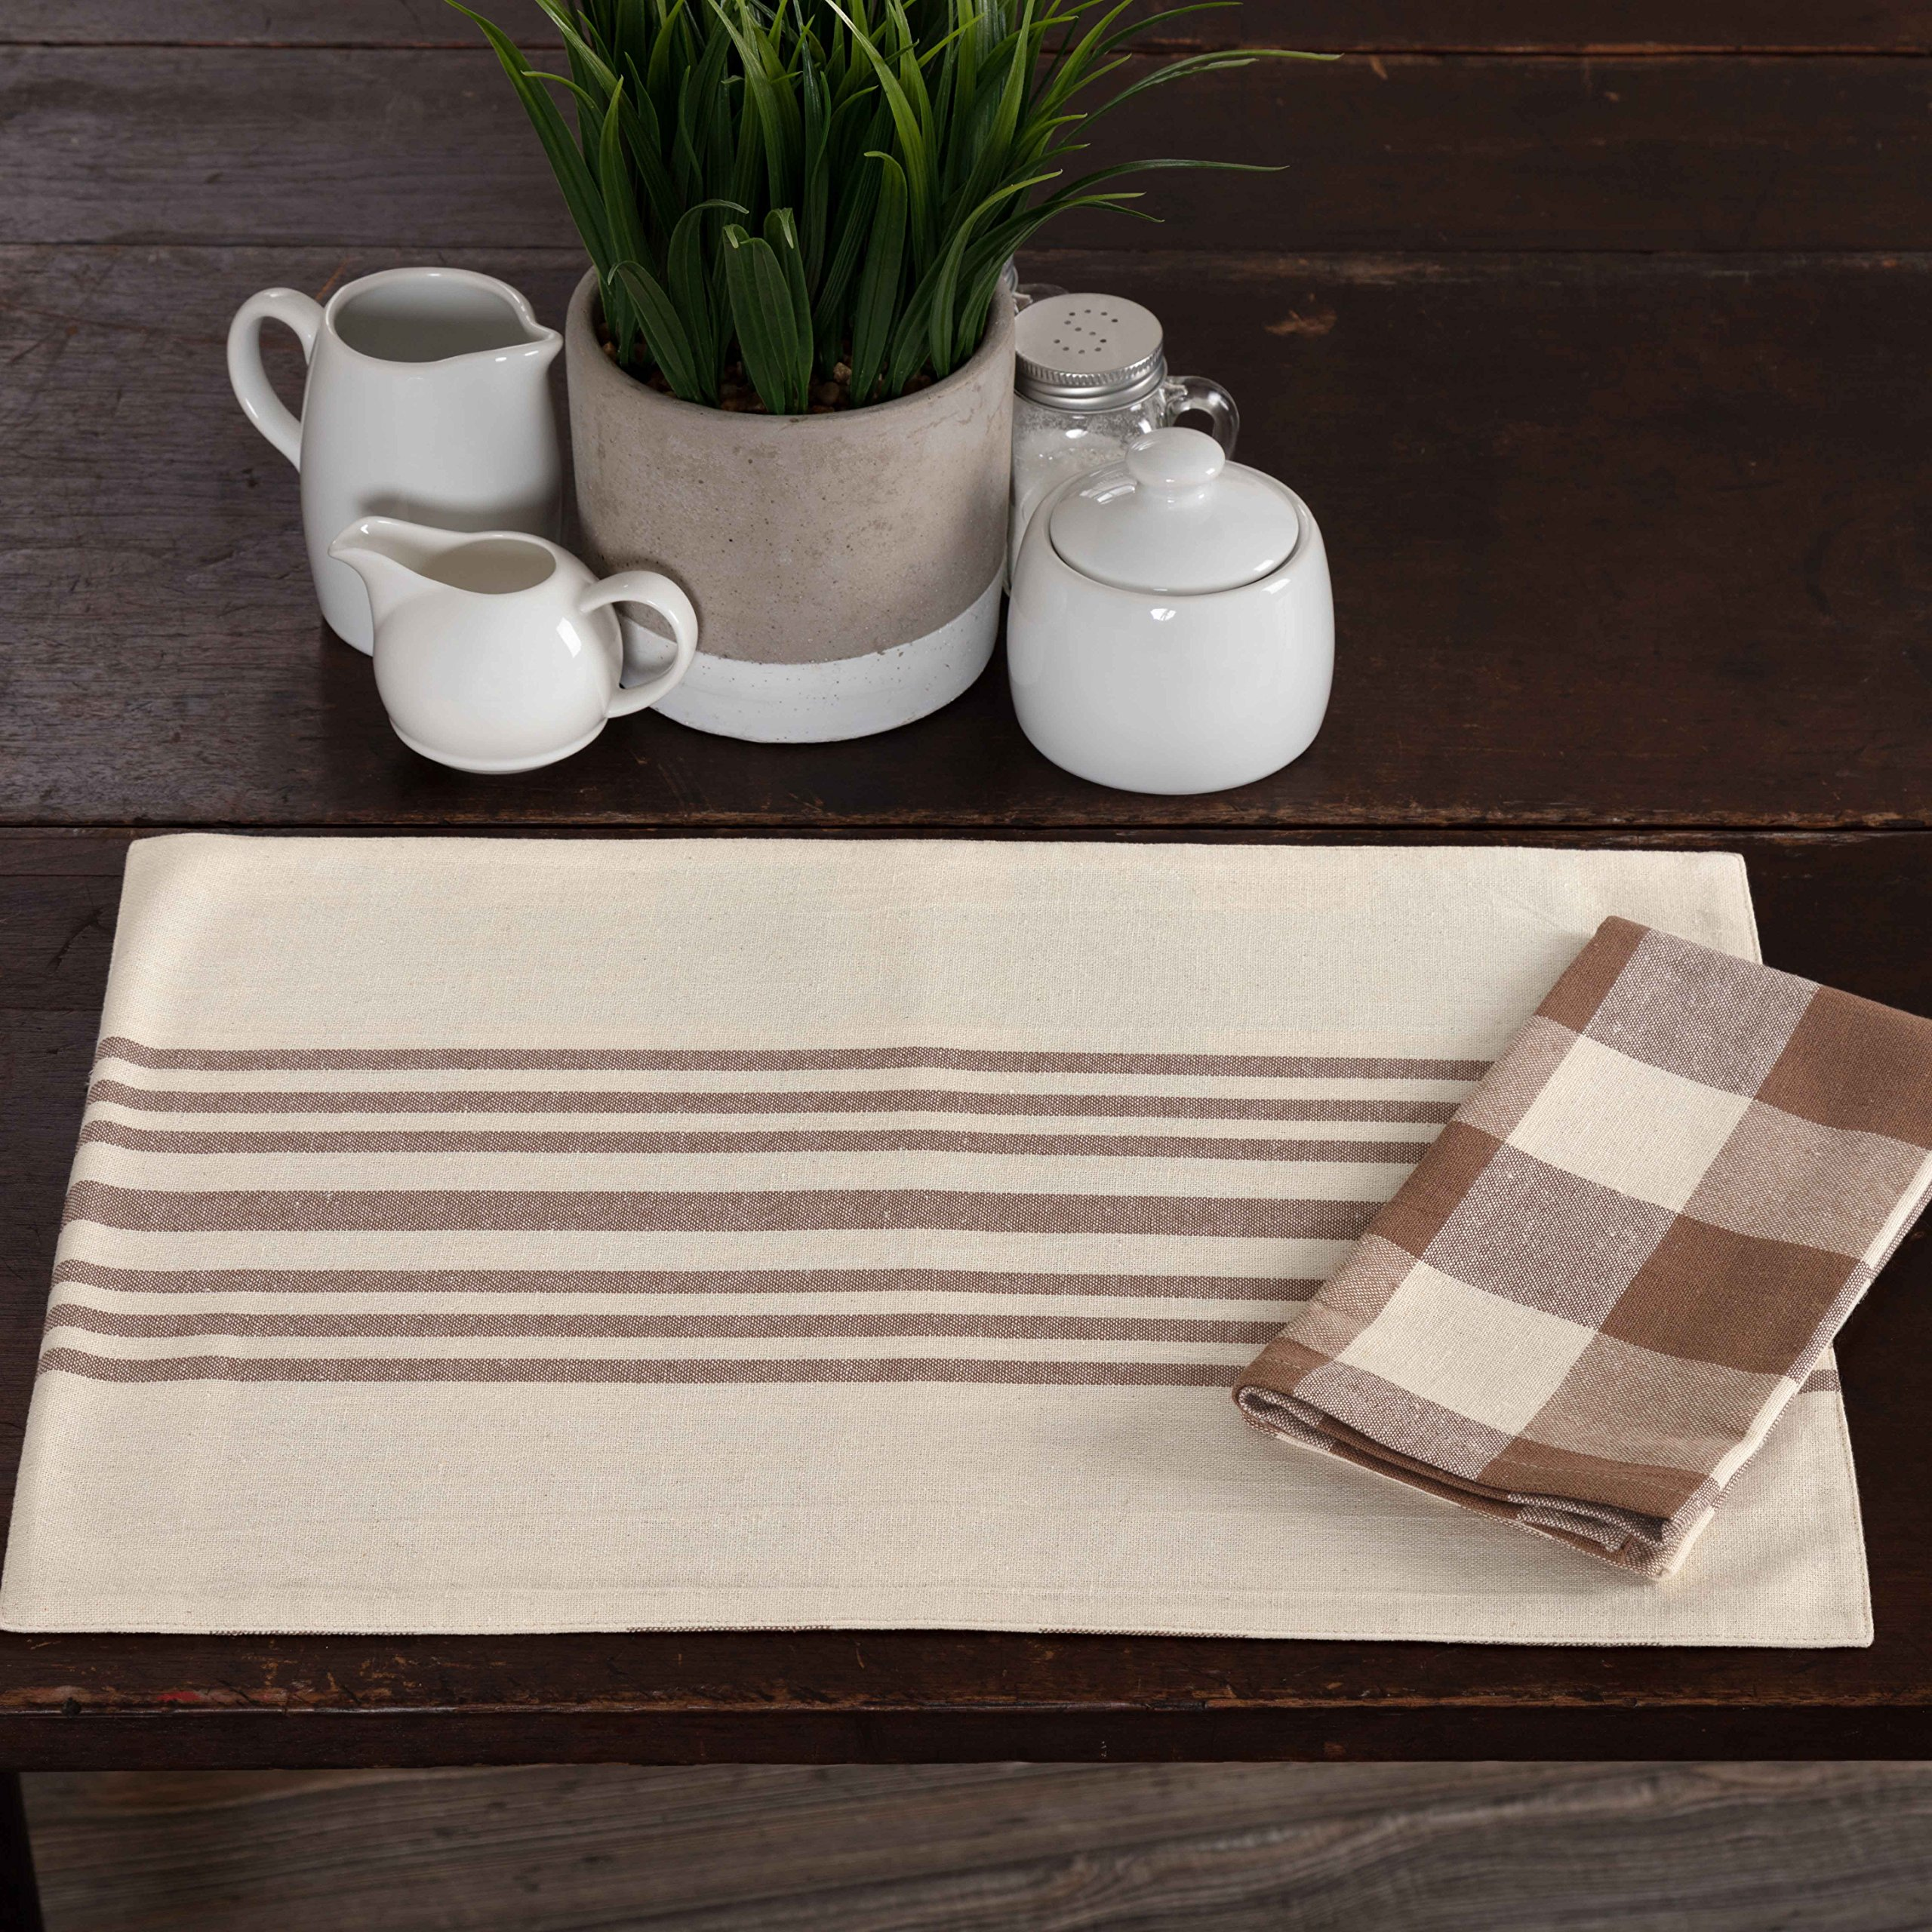 Dublin Check & Stripe Reversible Placemats, Set of 4, 12'' x 18'', Country Farmhouse Kitchen & Dining Table Décor